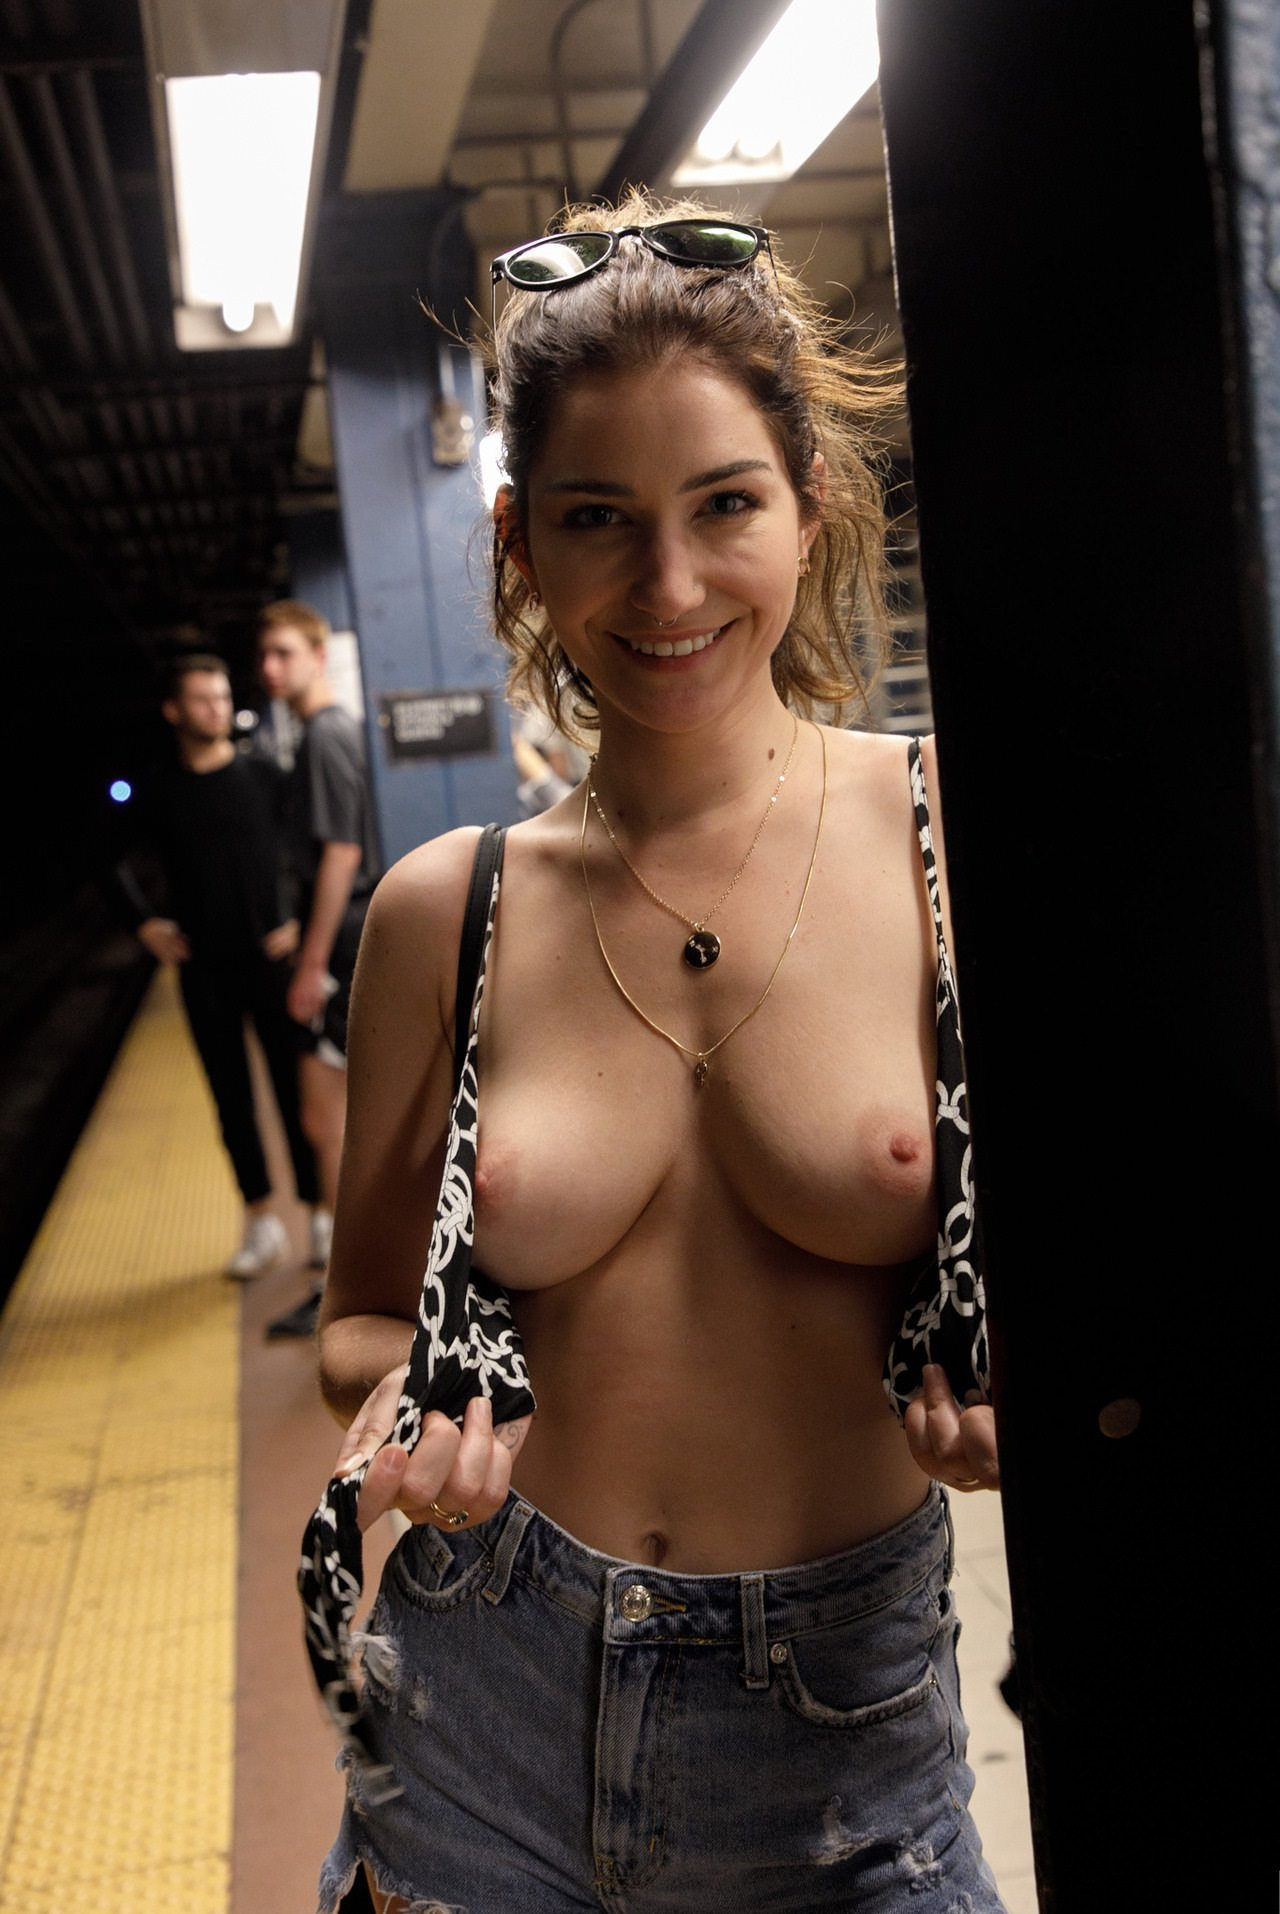 sloppy messy wet free porn tube watch download and cum #tits #titsout #framedboobs #jeans #denim #DenimAndDemTits #smile #toplessjeans